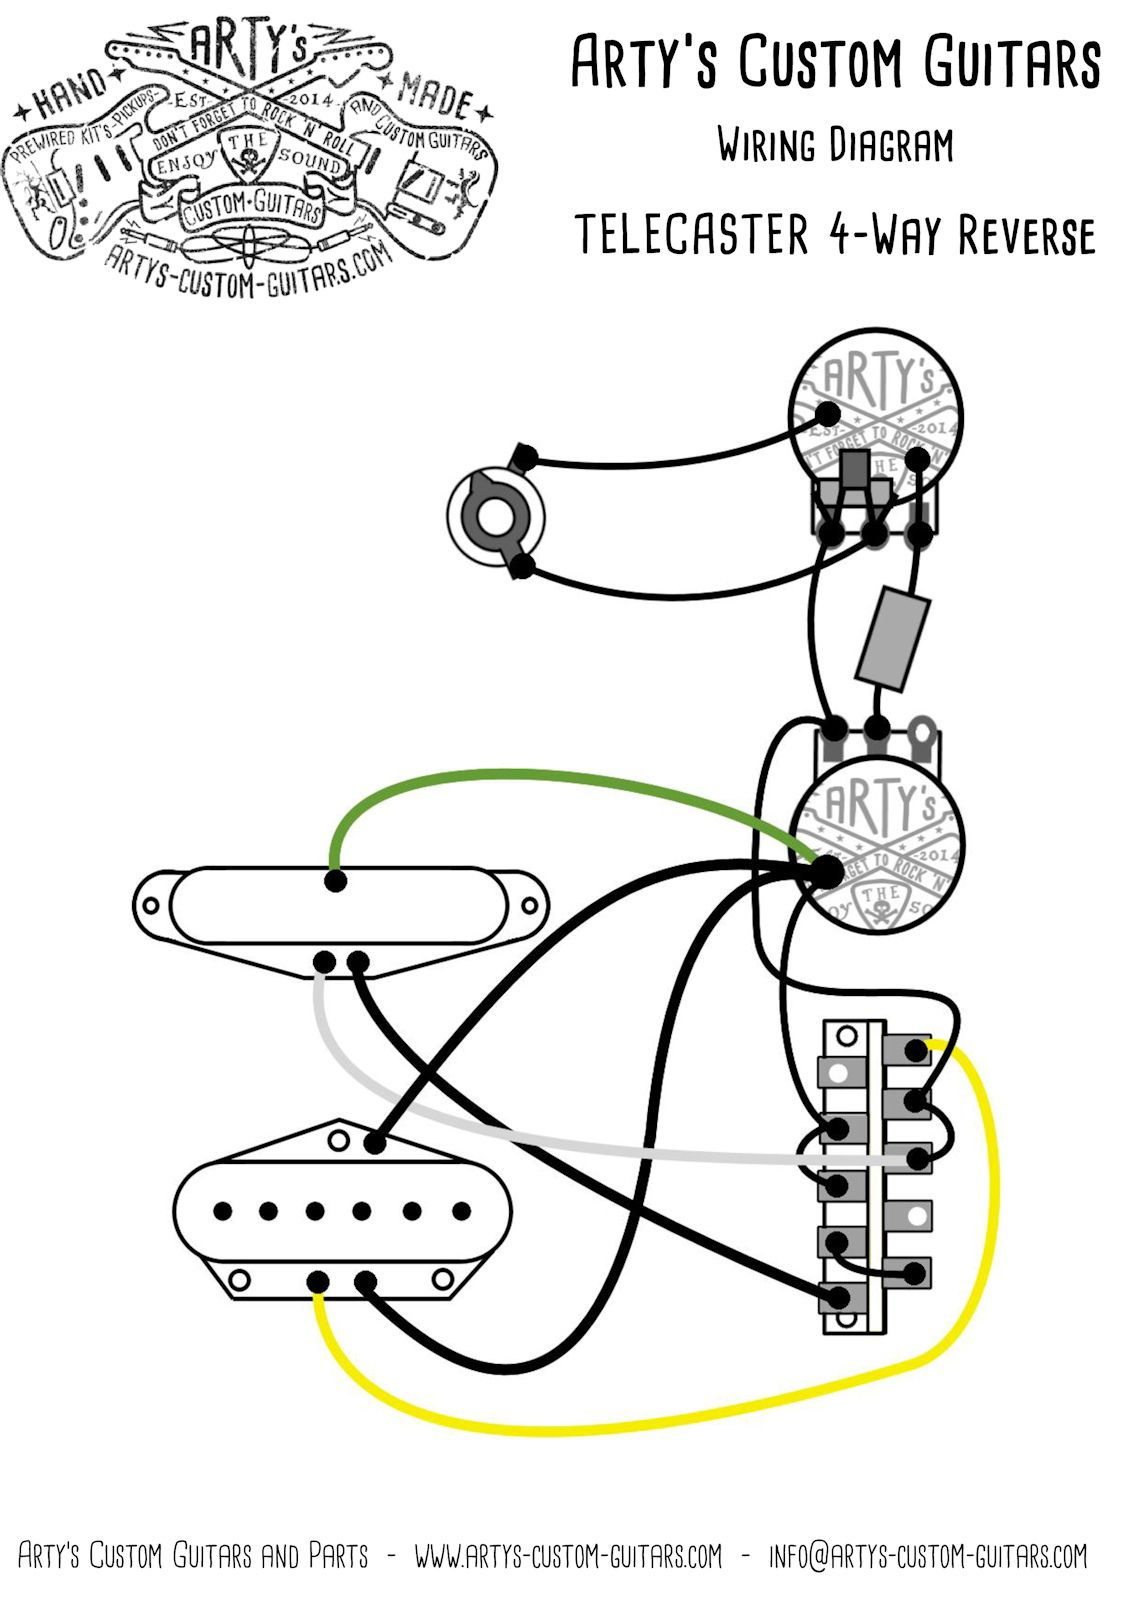 hight resolution of arty s custom guitars 4 way reverse control premium vintage pre wired prewired kit wiring assembly harness artys tele telecaster